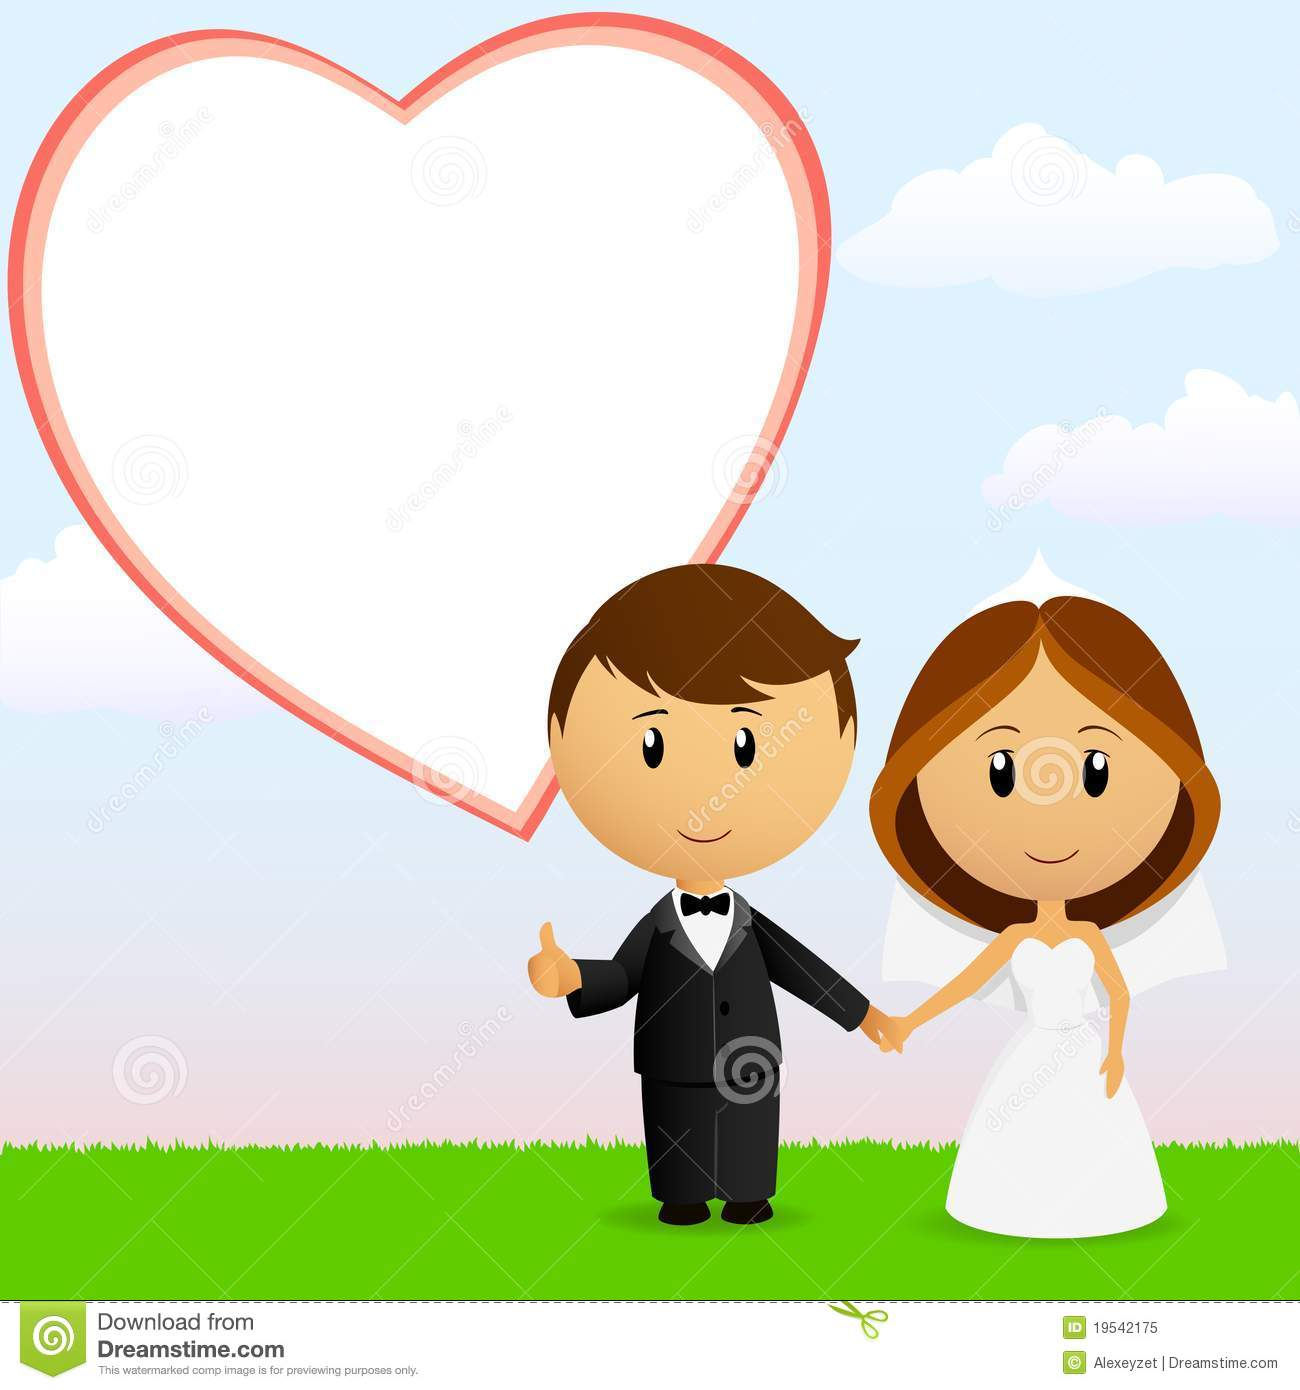 Vector illustration cute cartoon wedding couple holding hand with